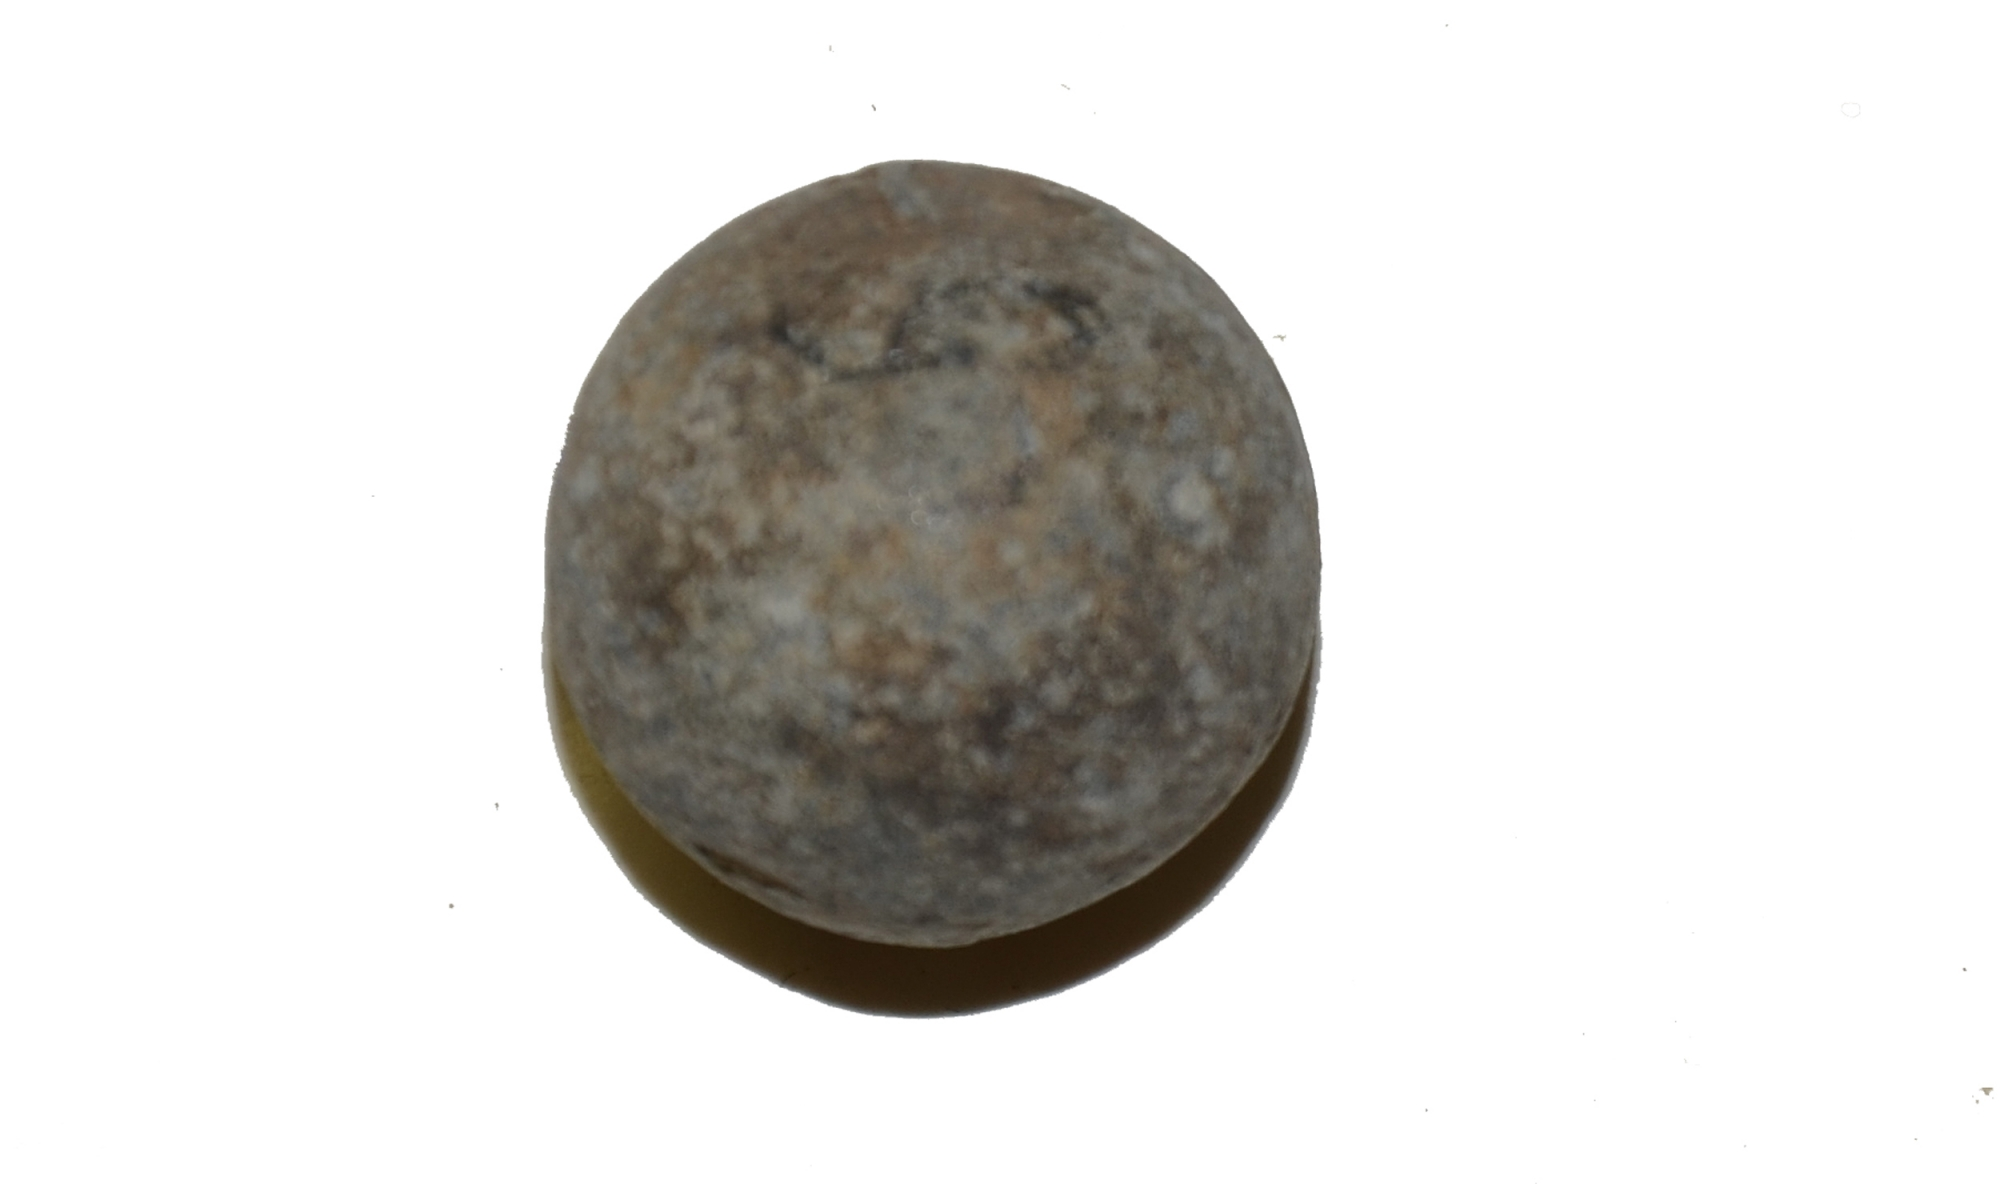 US/CS .69 CAL. ROUND MUSKET BALL RECOVERED ON THE KLINGEL FARM, GETTYSBURG